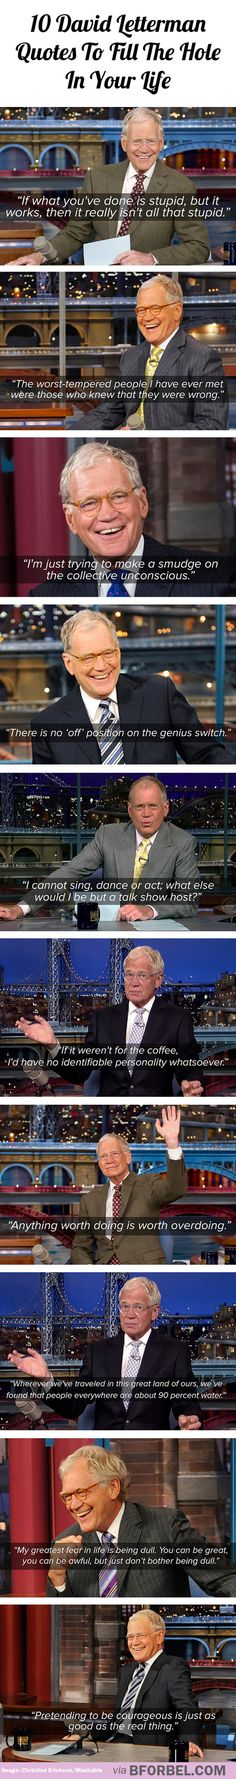 10 David Letterman quotes to fill the hole in your life